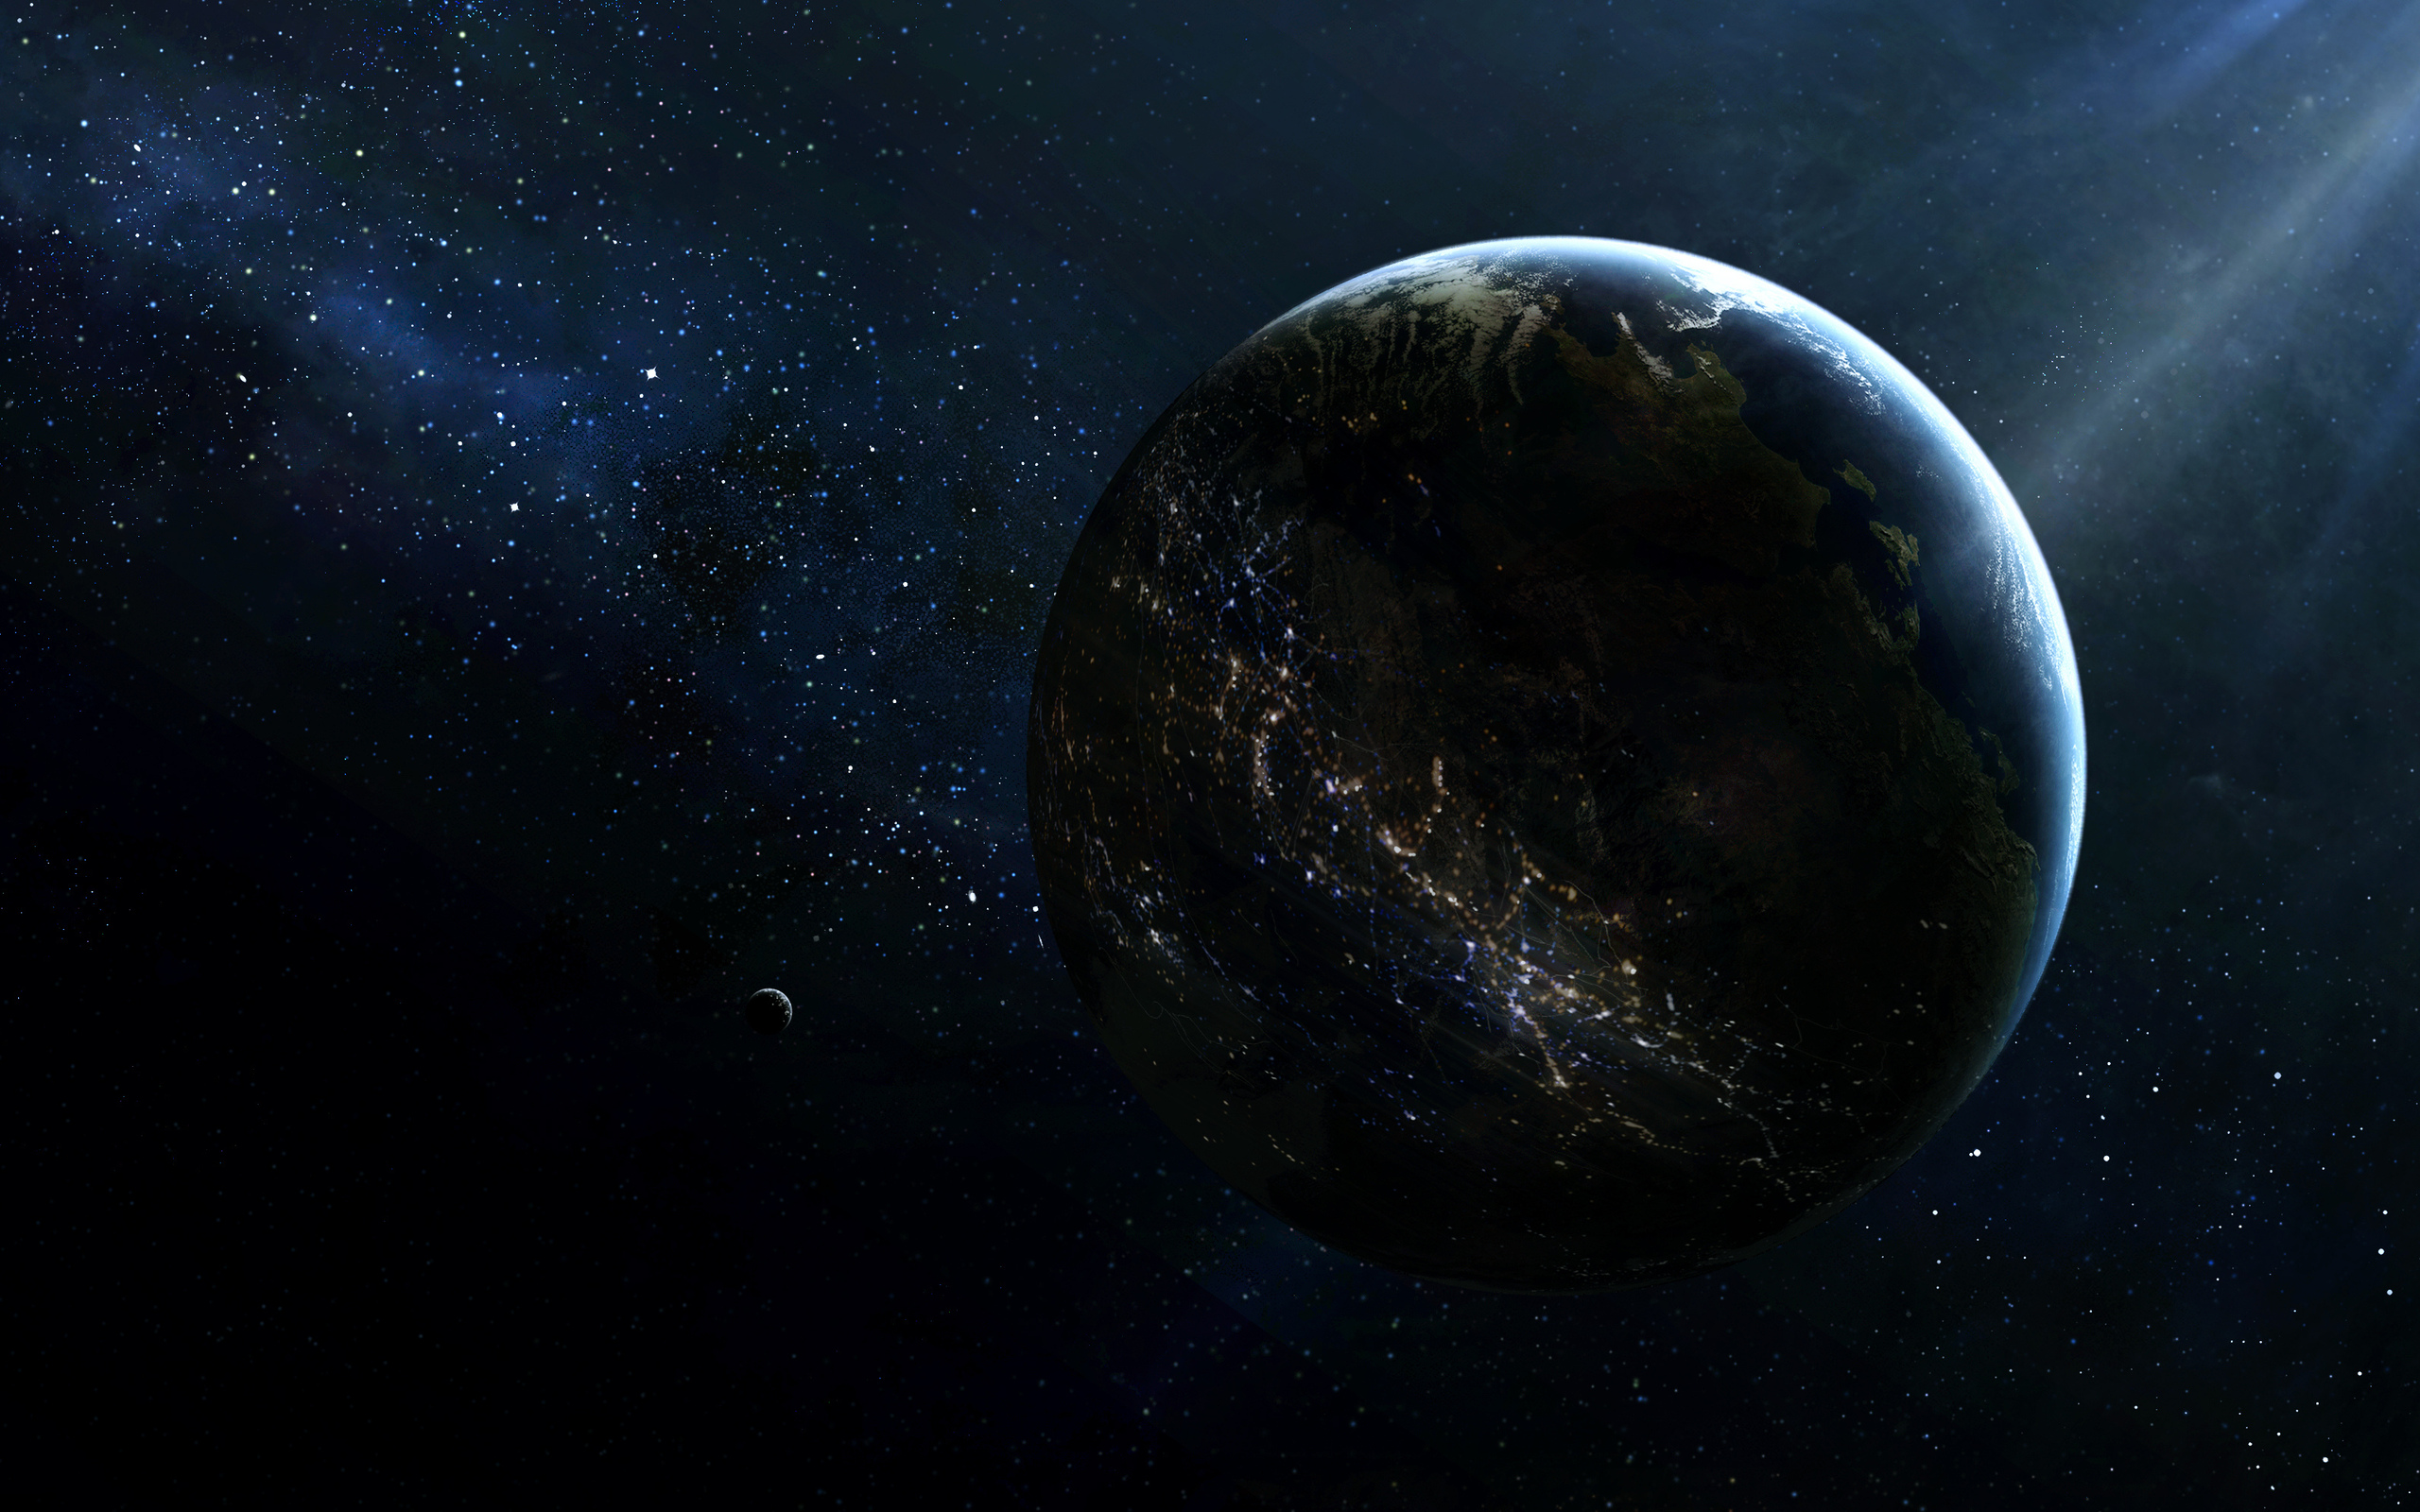 Sci fi science fiction space universe outer planets stars ... | 2560 x 1600 jpeg 1354kB